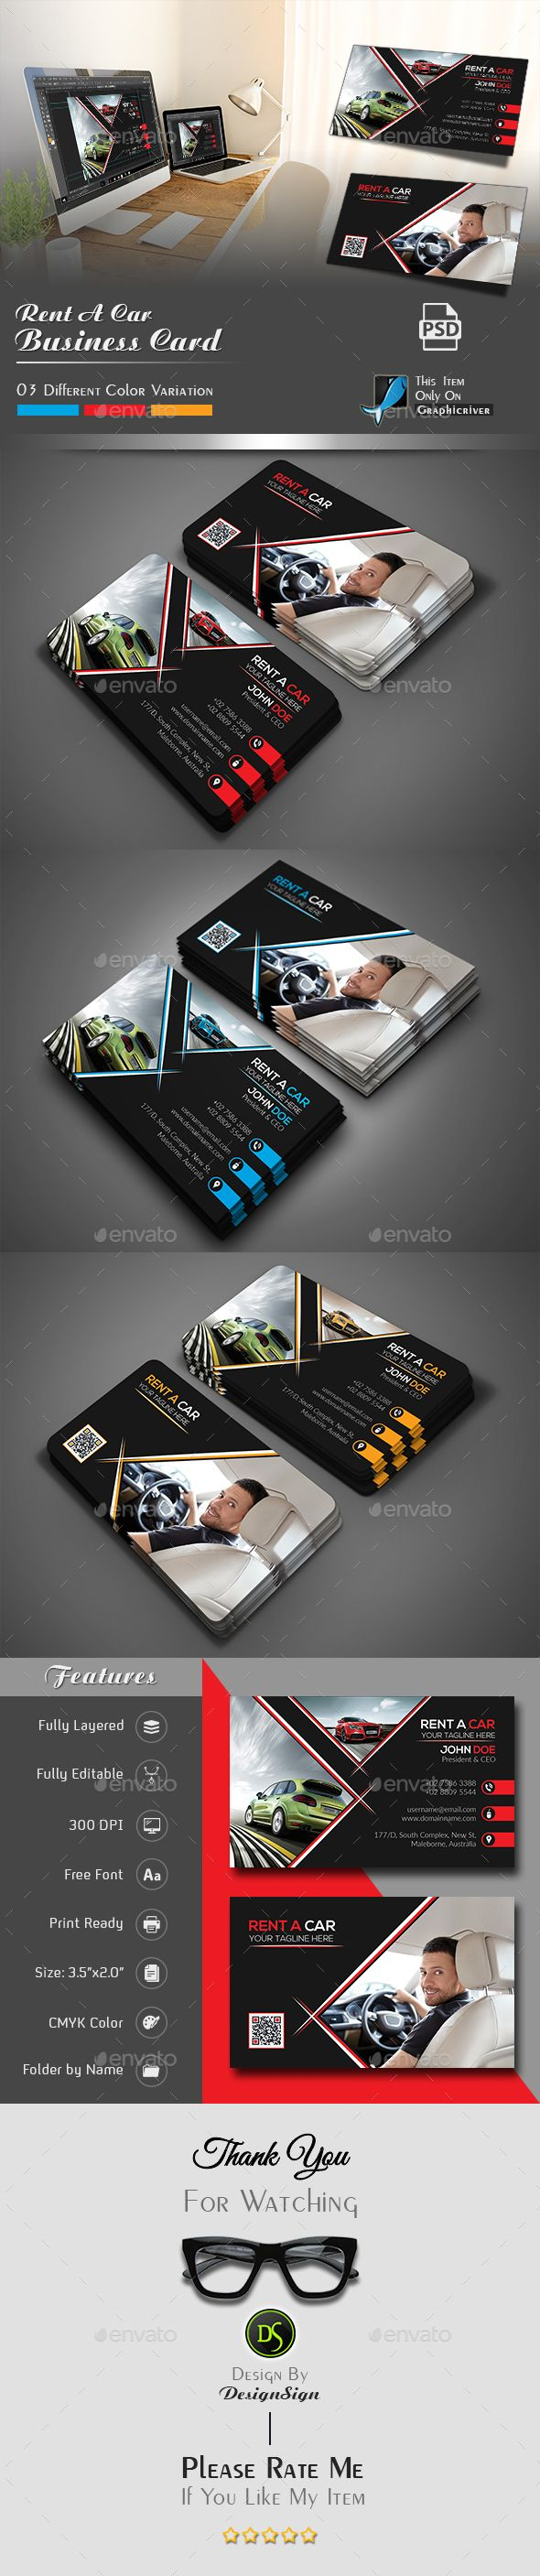 267 best business card visiting card images on pinterest rent a car business card magicingreecefo Images